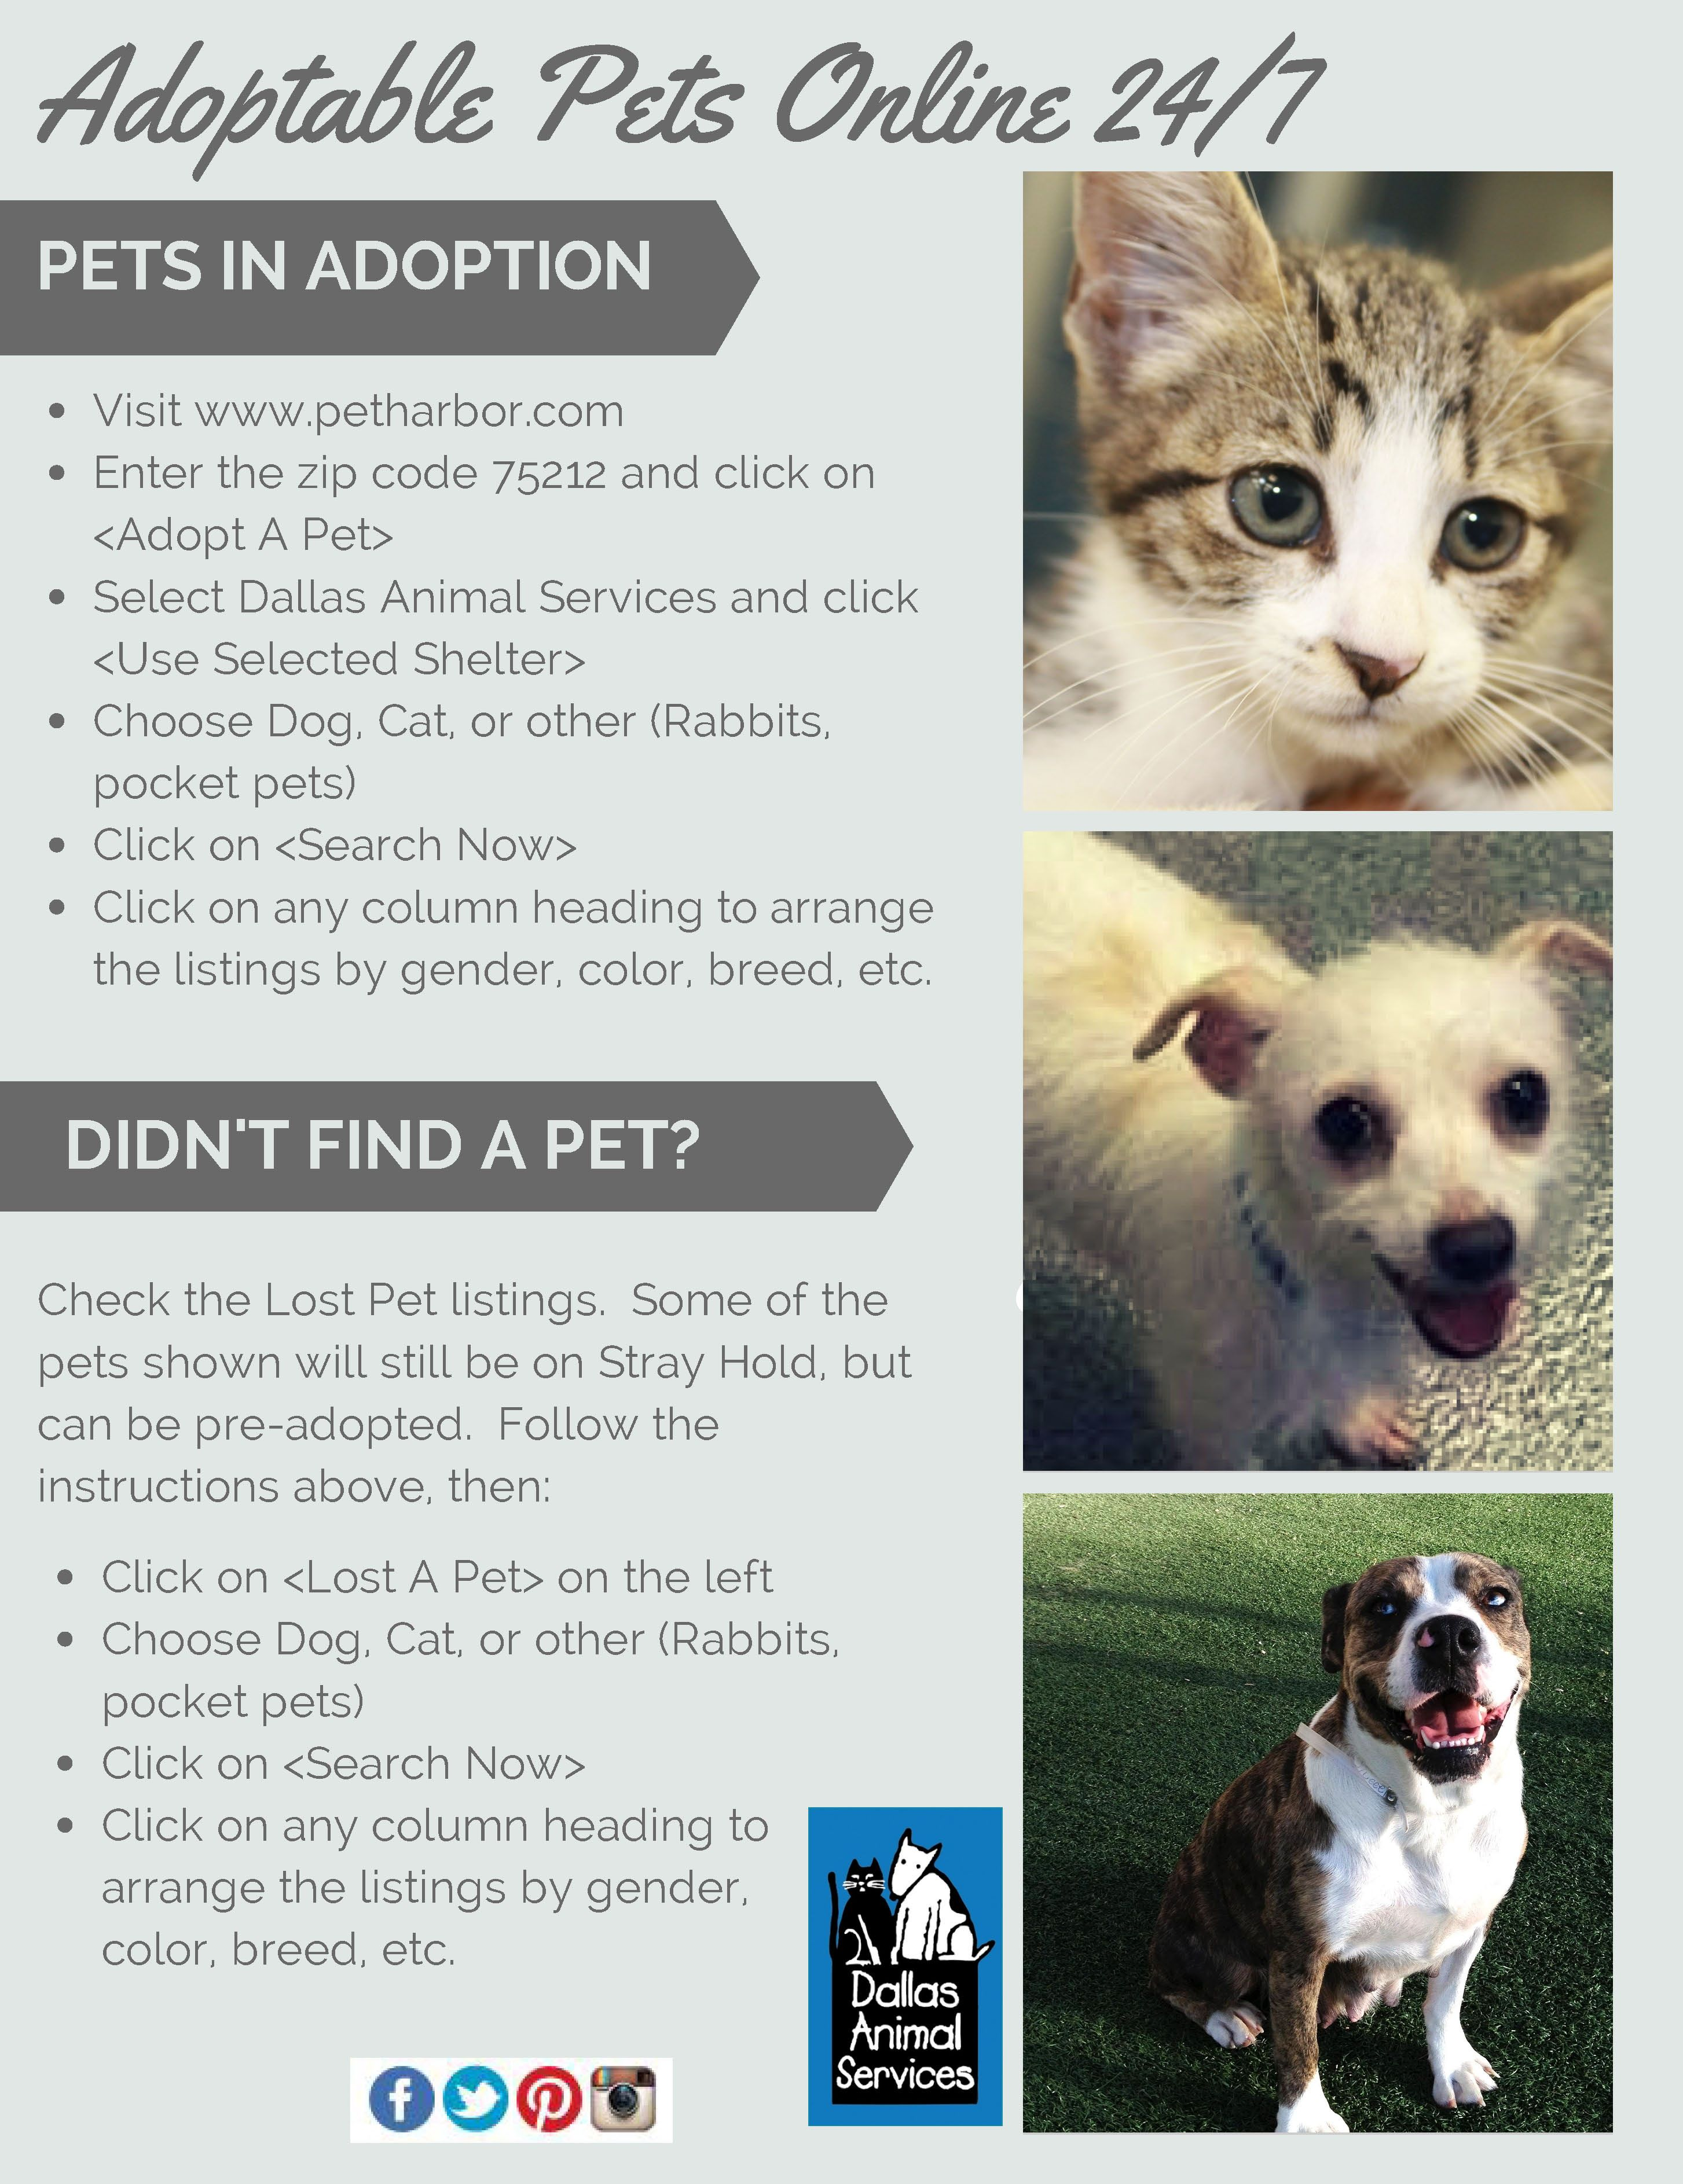 The Dallas Animal Shelter is the best place to find your